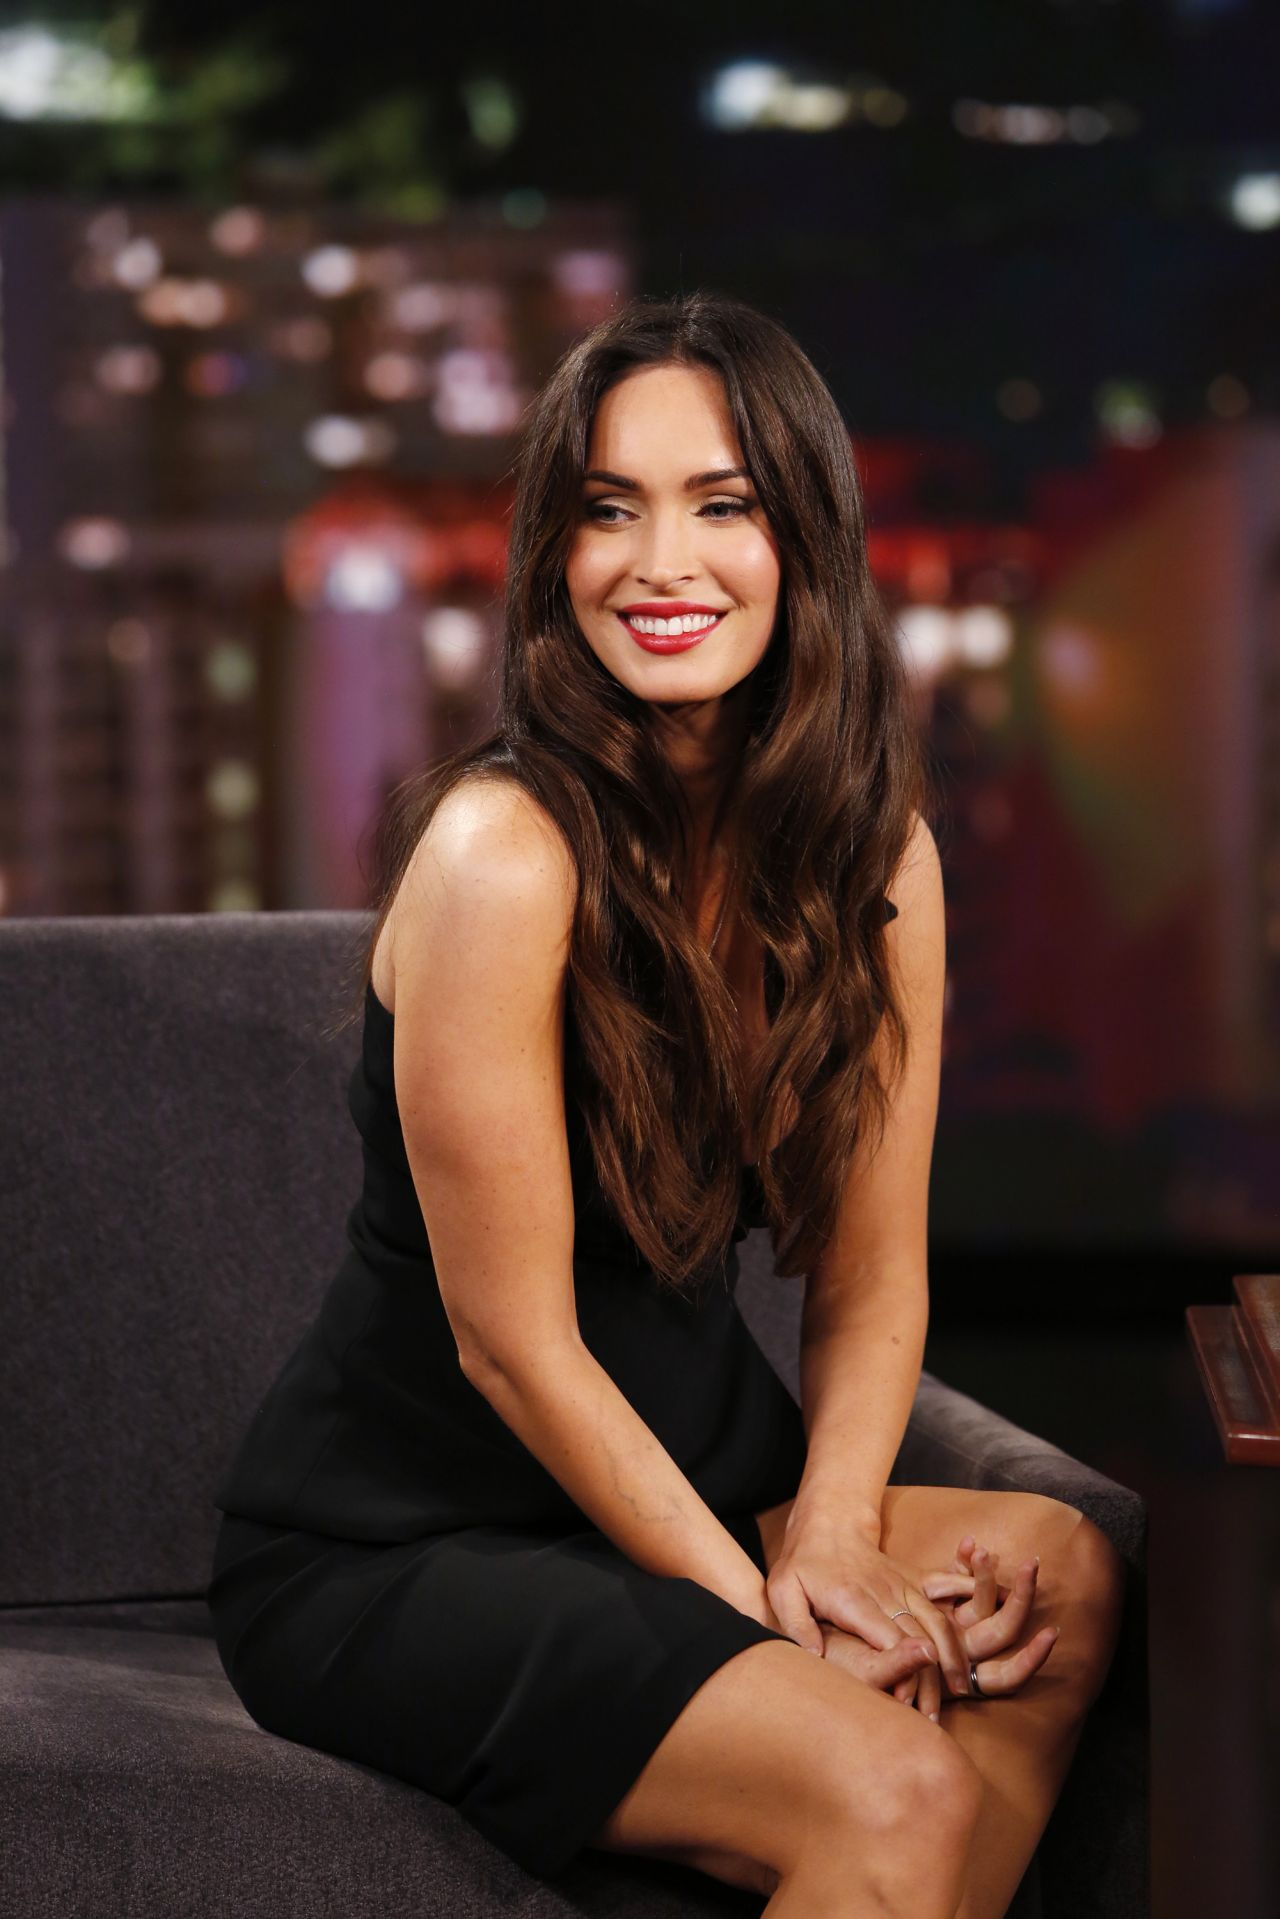 Megan Fox Appeared on 'Jimmy Kimmel Live!' Show in Hollywood 2/17 ... Megan Fox